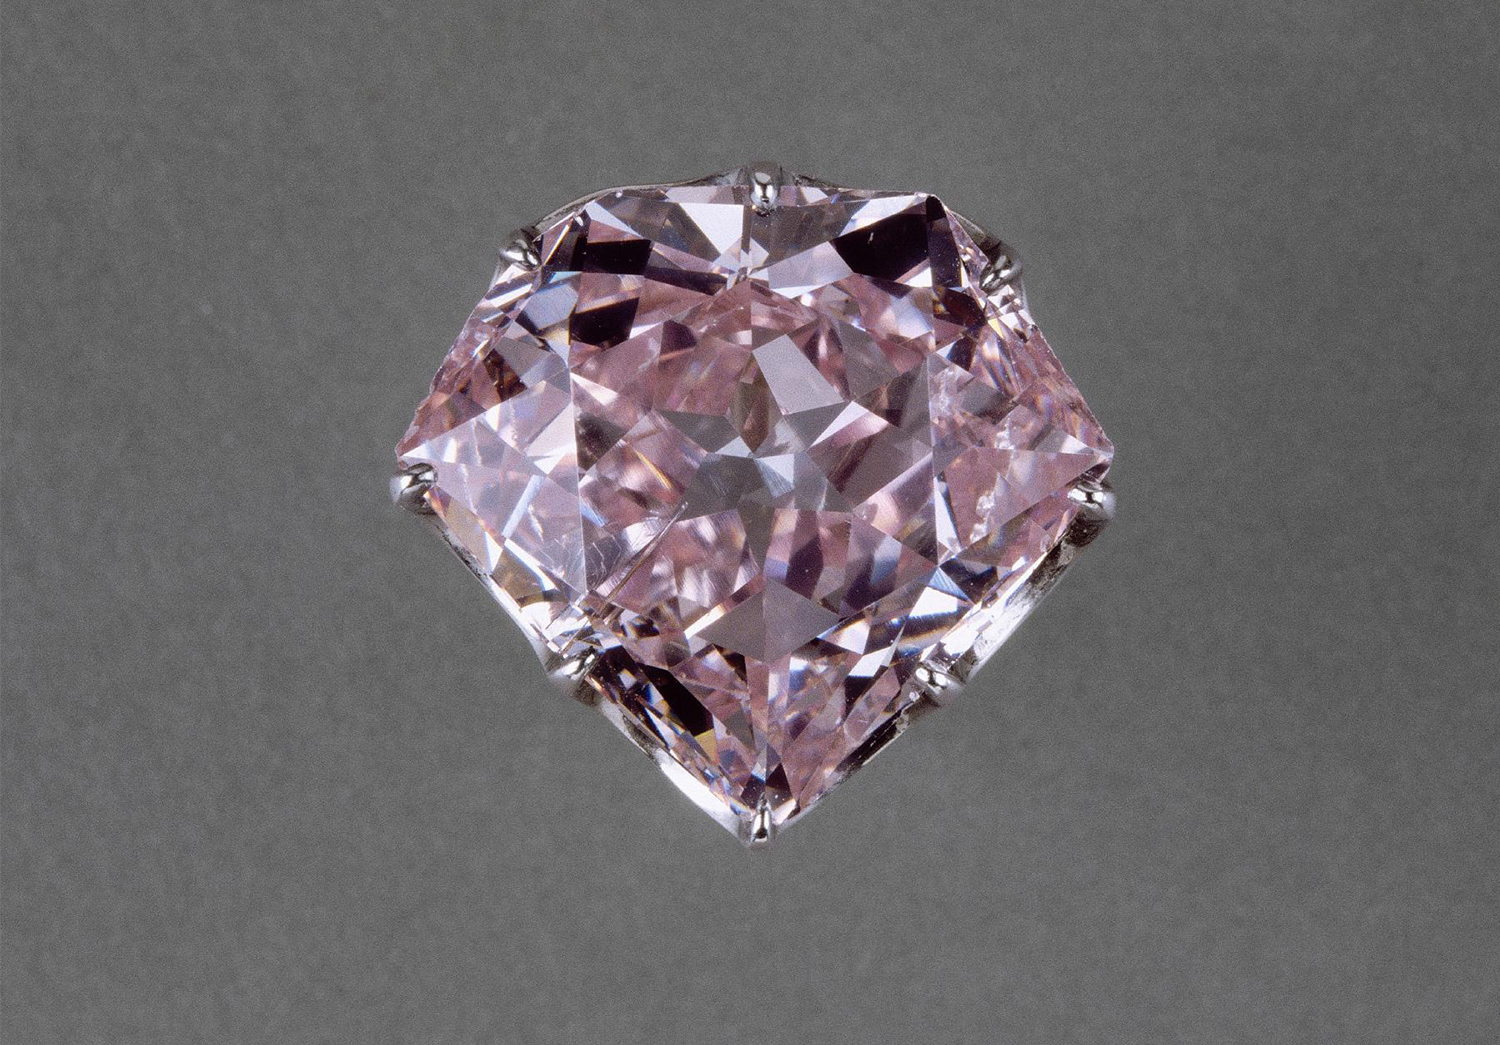 Diamant Rose L 39hortensia Un Diamant Rose De La Couronne De France